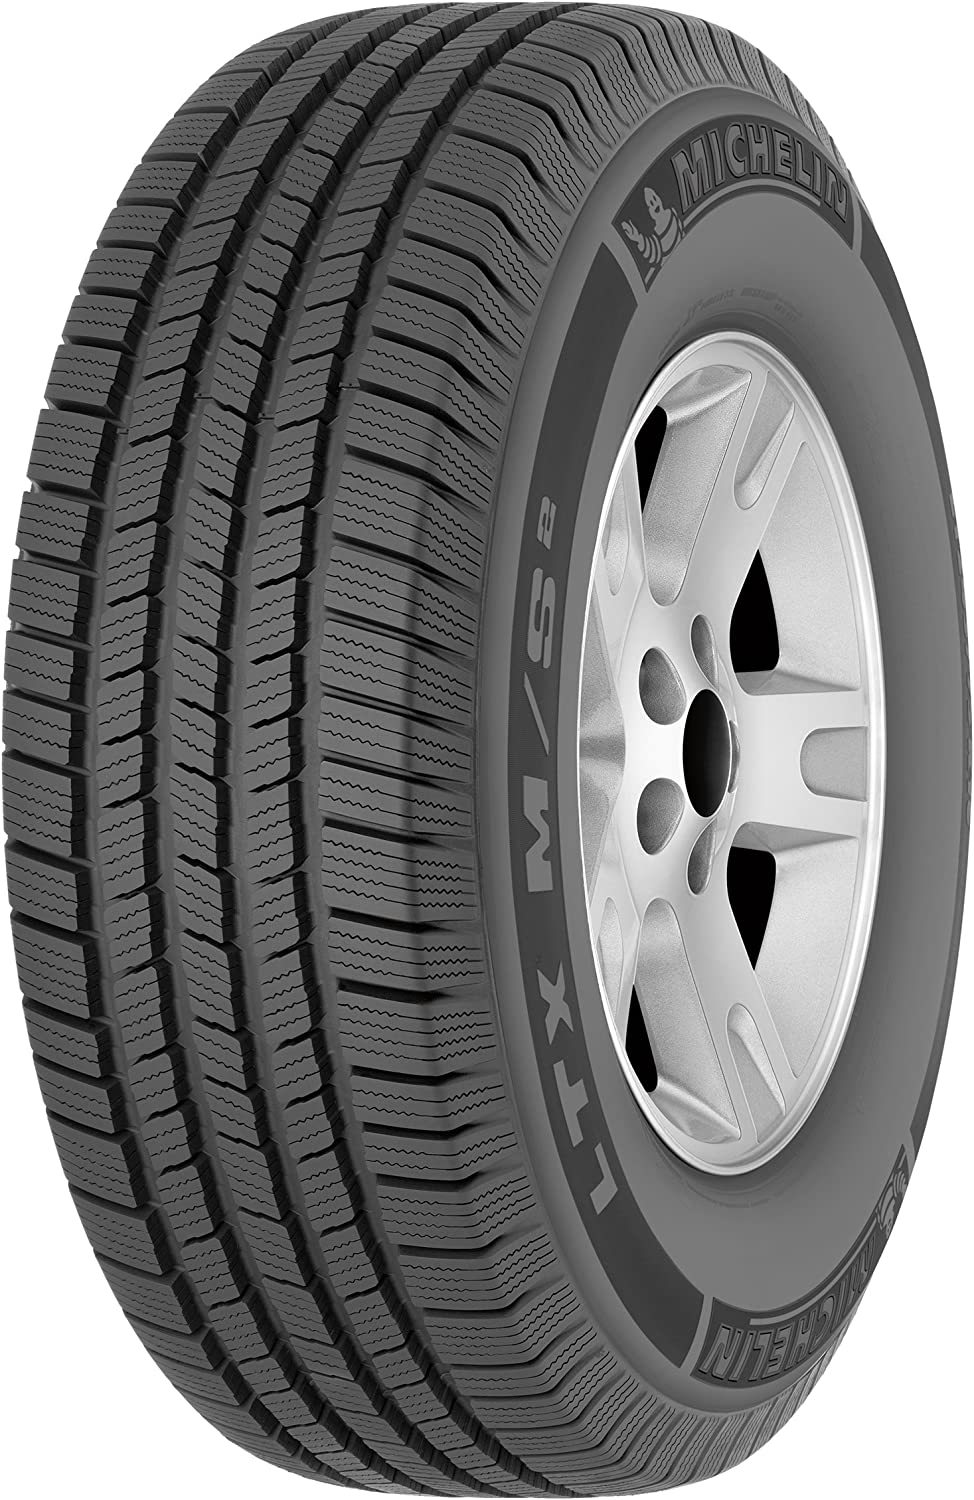 Michelin LTX M/S2 All-Season Radial Tire